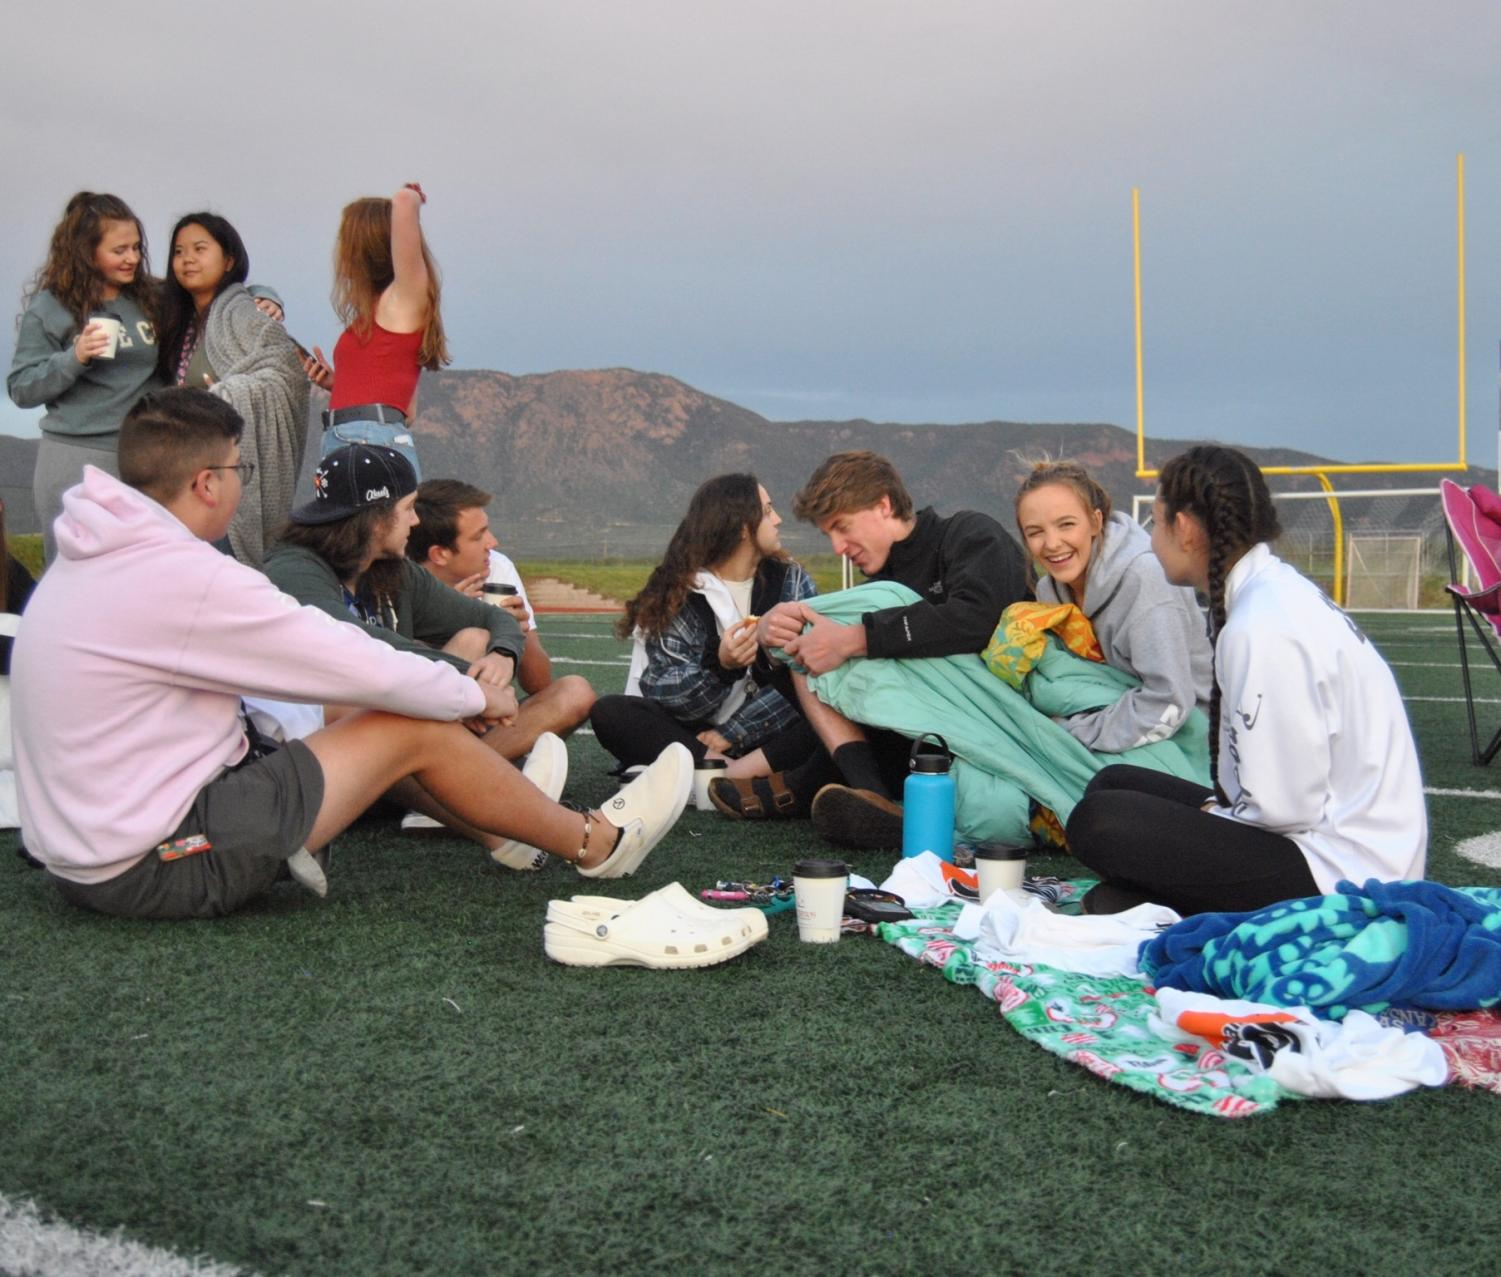 """Students sit together to watch the sunrise on the Don Breese football field on August 24. """"We are rising; the sun is rising,"""" Snouwaert 12 said."""